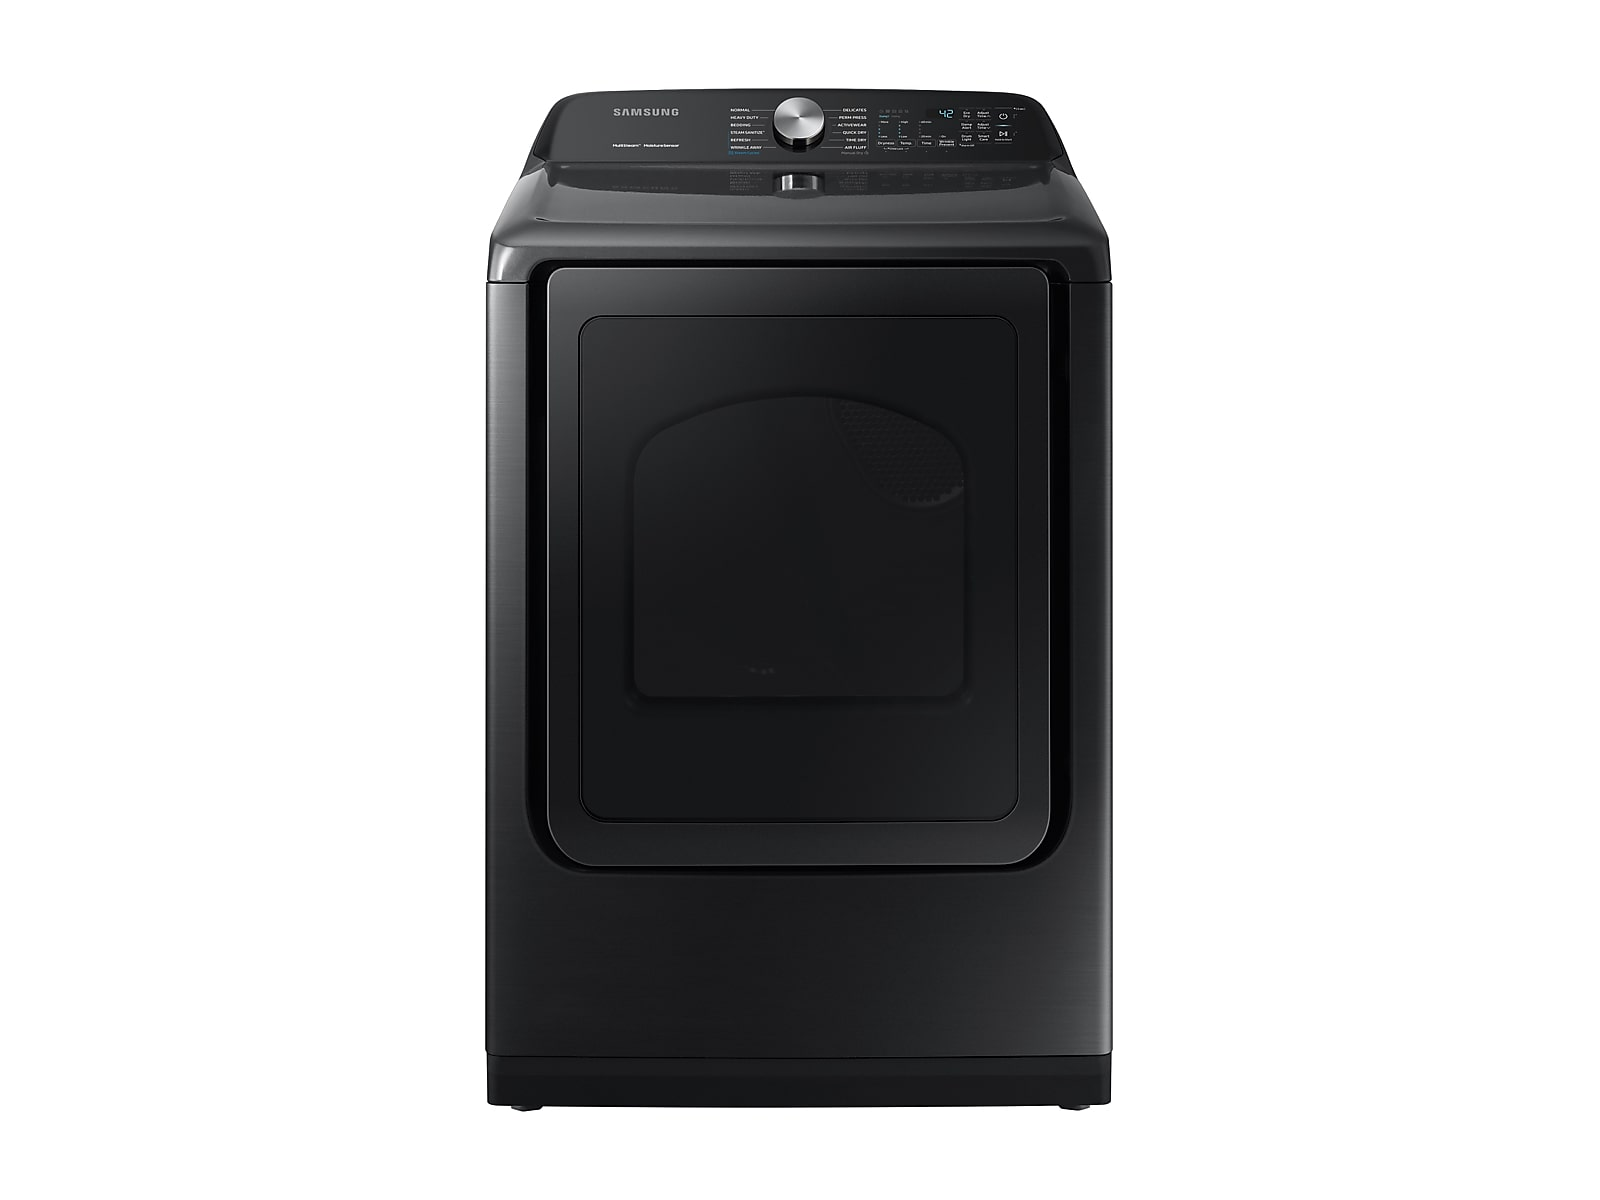 Samsung coupon: Samsung 7.4 cu. ft. Electric Dryer with Steam Sanitize+ in Black Stainless Steel(DVE50R5400V/A3)